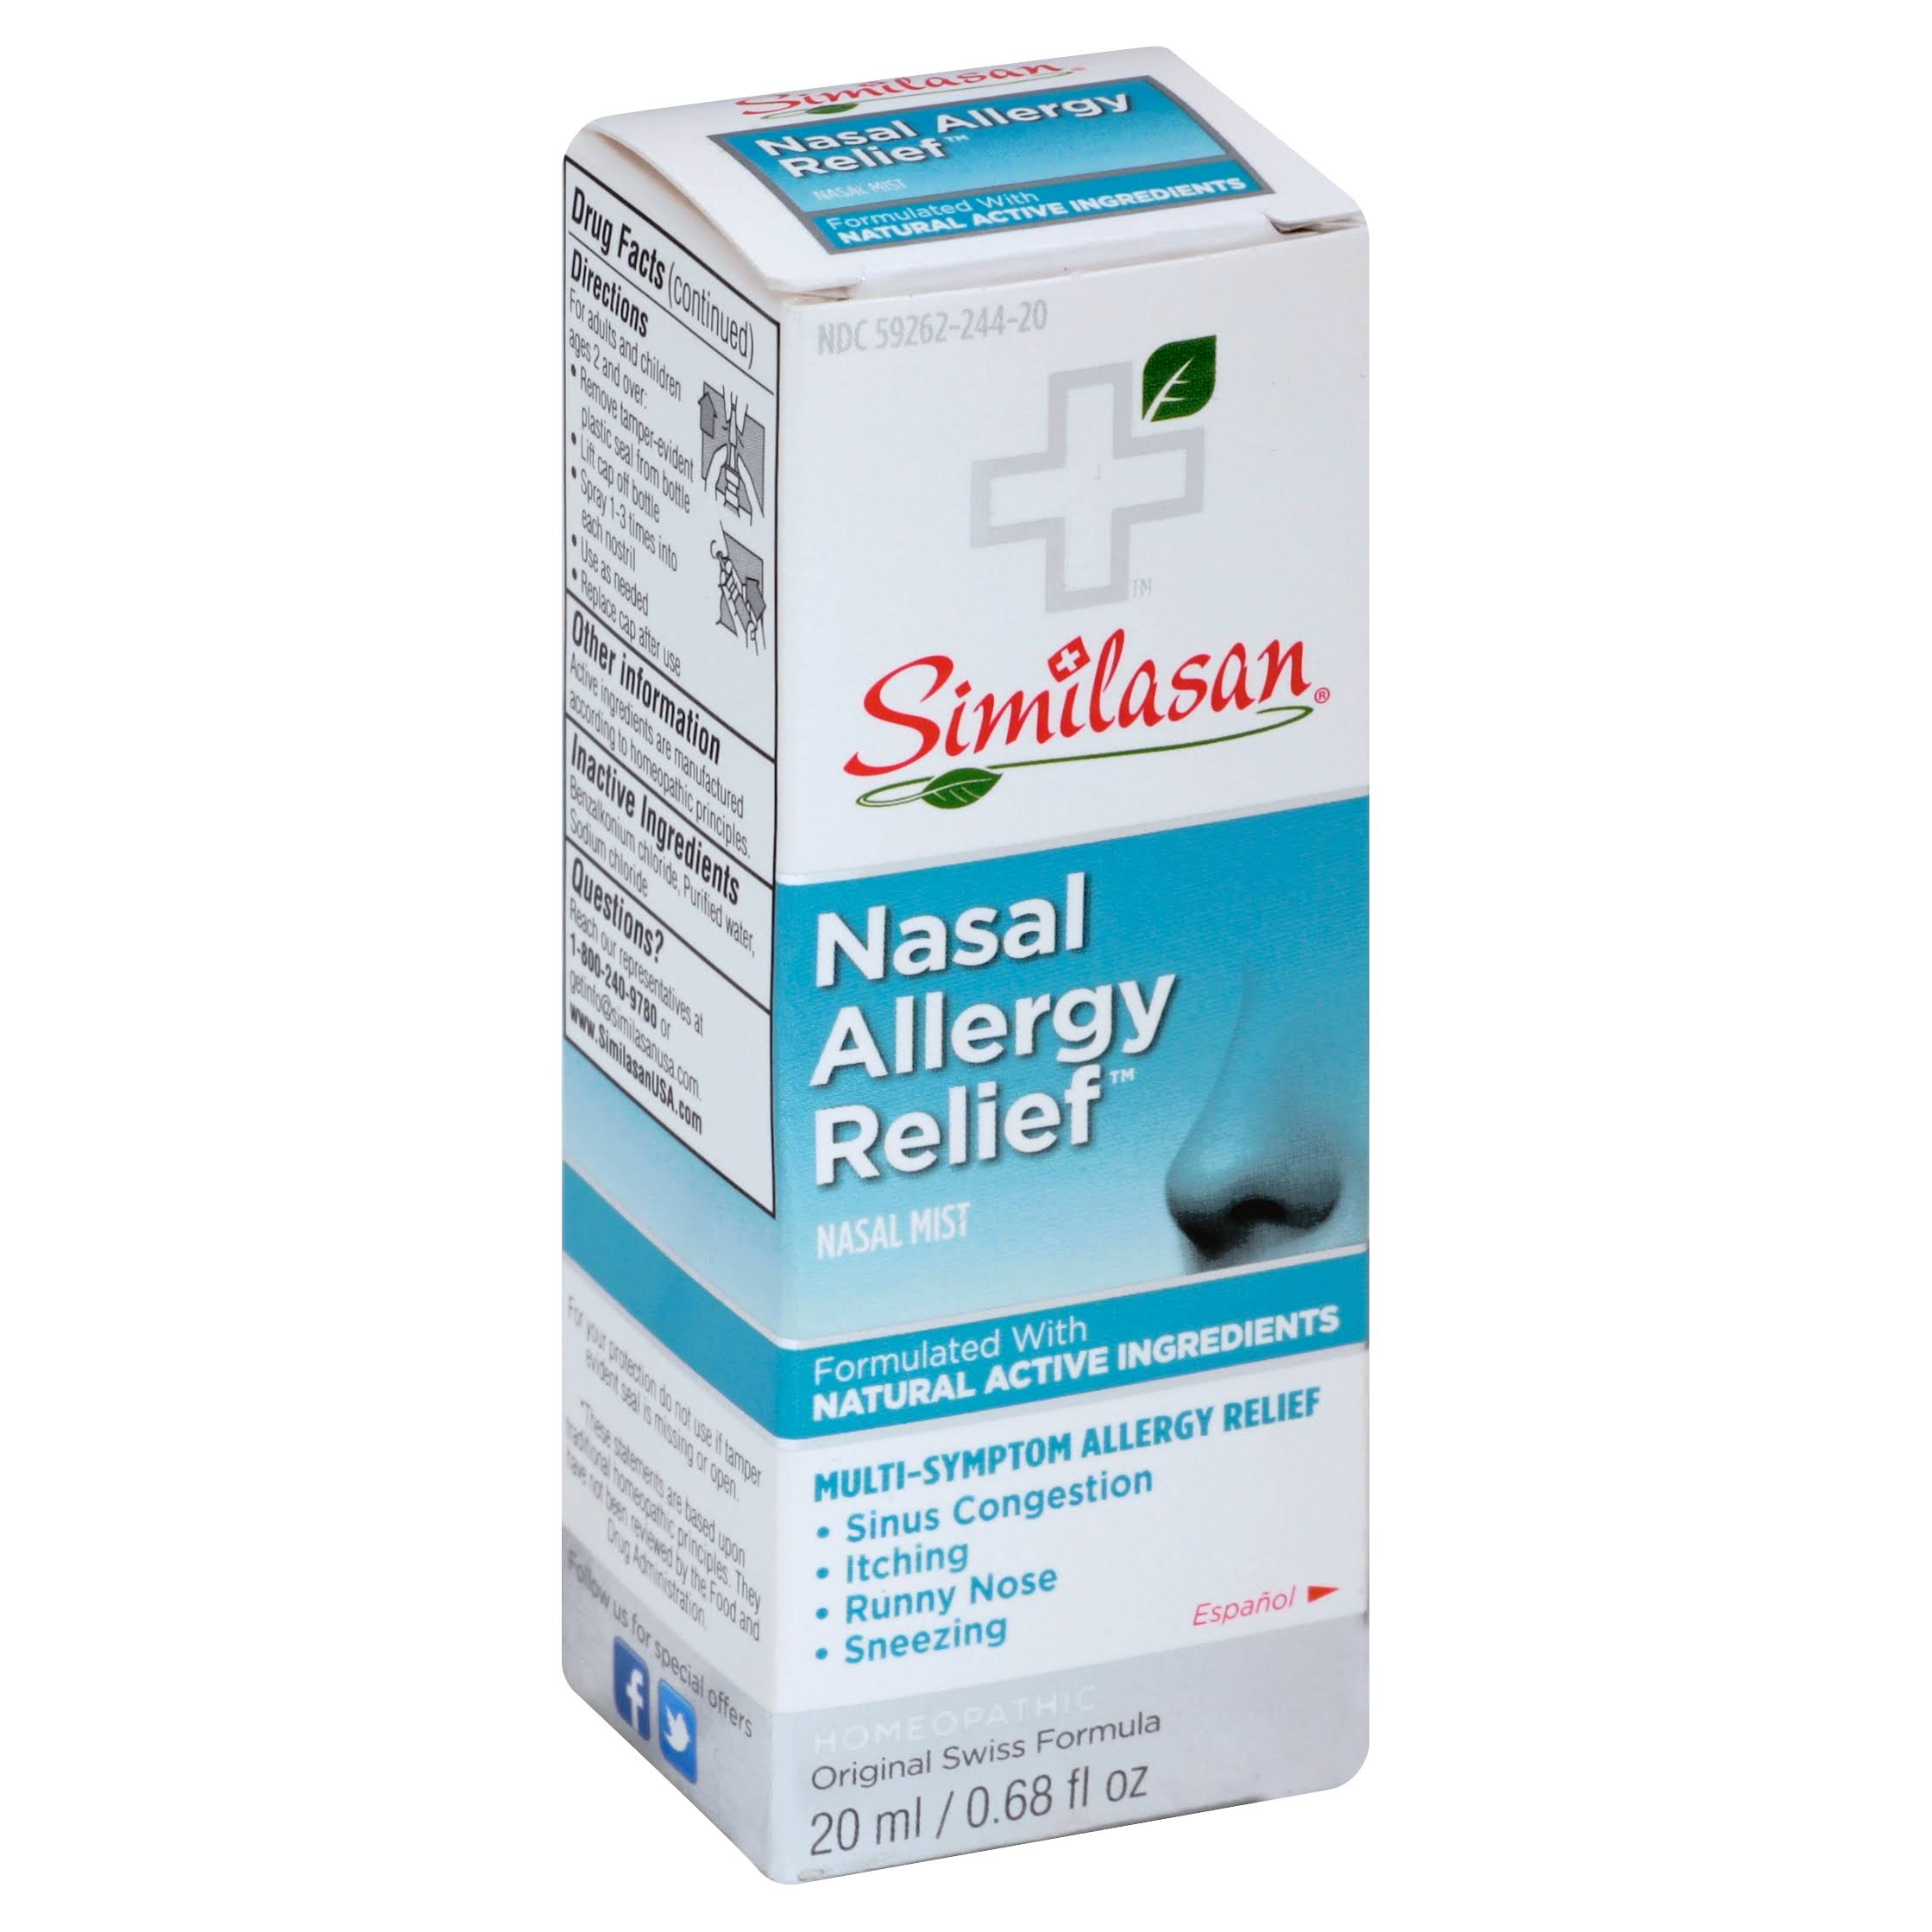 Similasan Nasal Allergy Relief Nasal Mist - 0.68oz